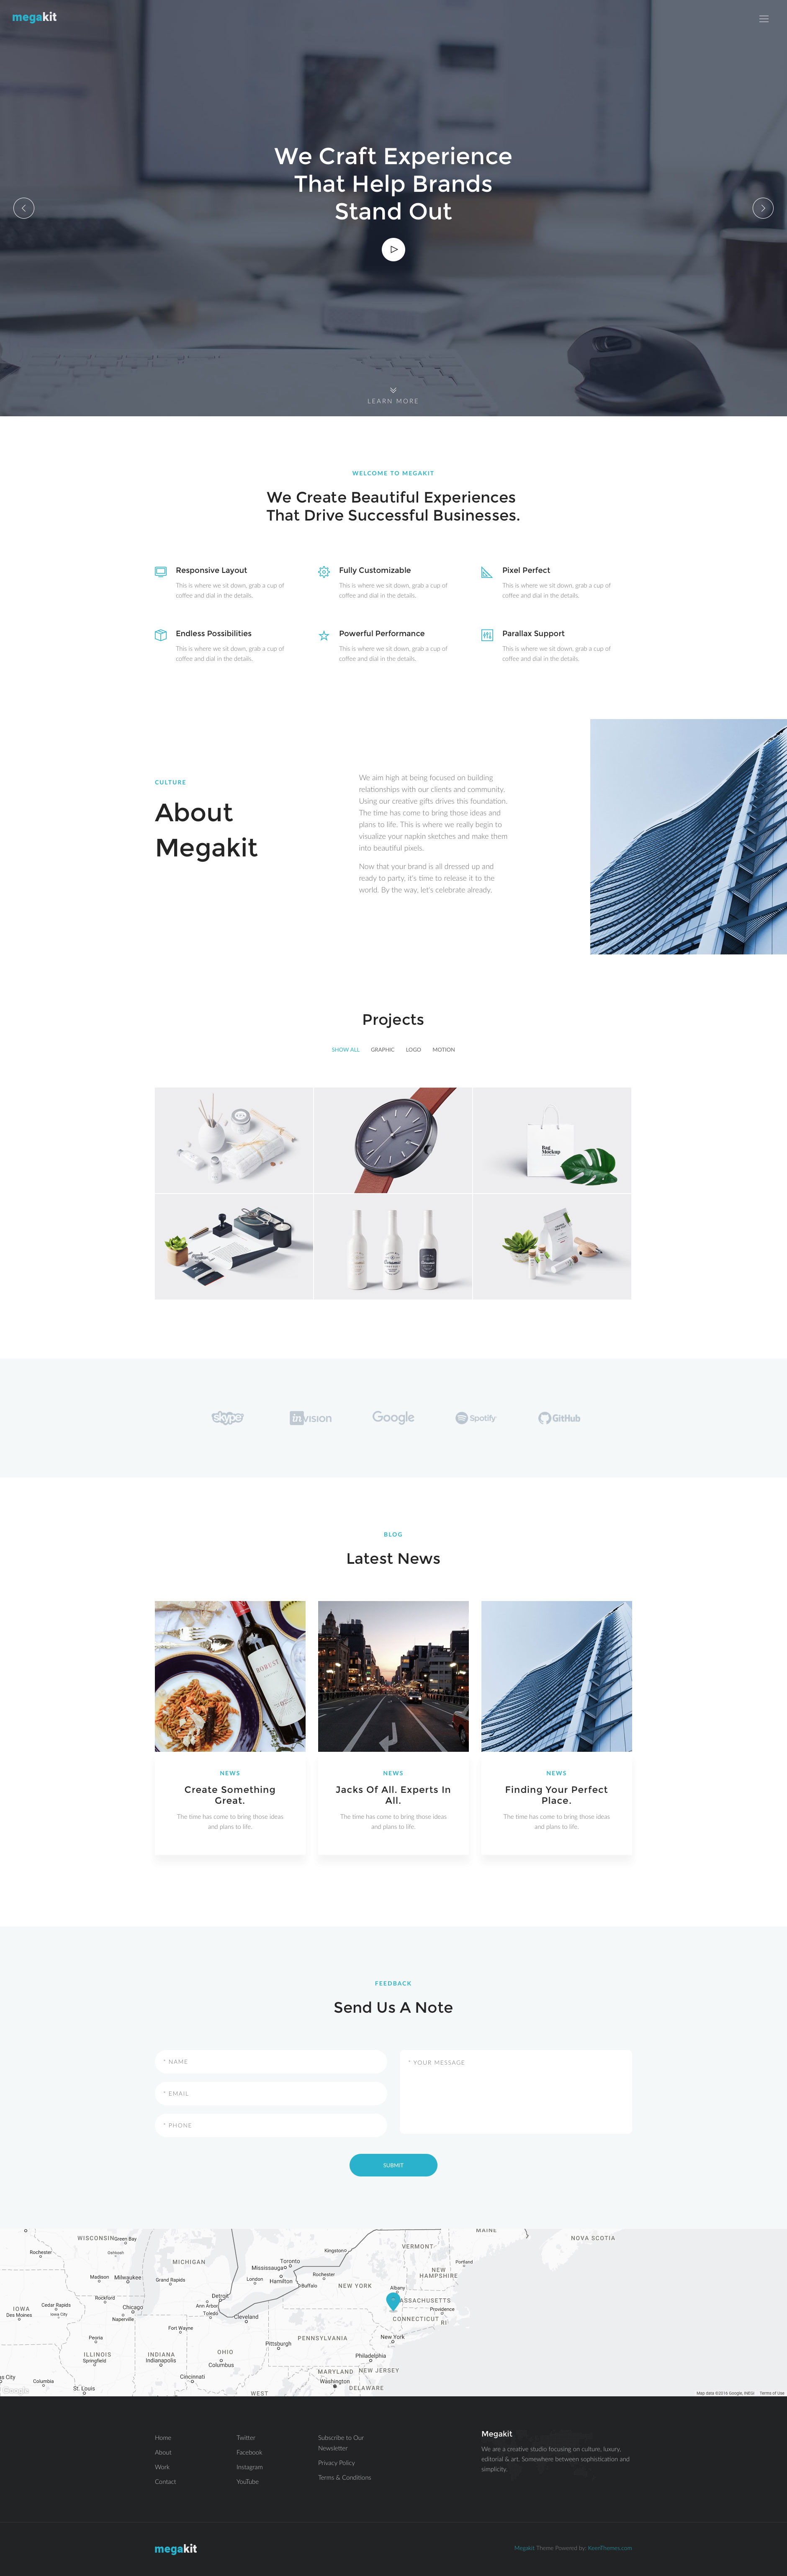 Megakit is a free responsive HTML5 Bootstrap multipurpose website template. It features fully responsive and mobile friendly design, reusable templates and components, offcanvas menu, parallax effects, developer friendly code. Megakit template is fully responsive and built on the popular Bootstrap 3 framework.